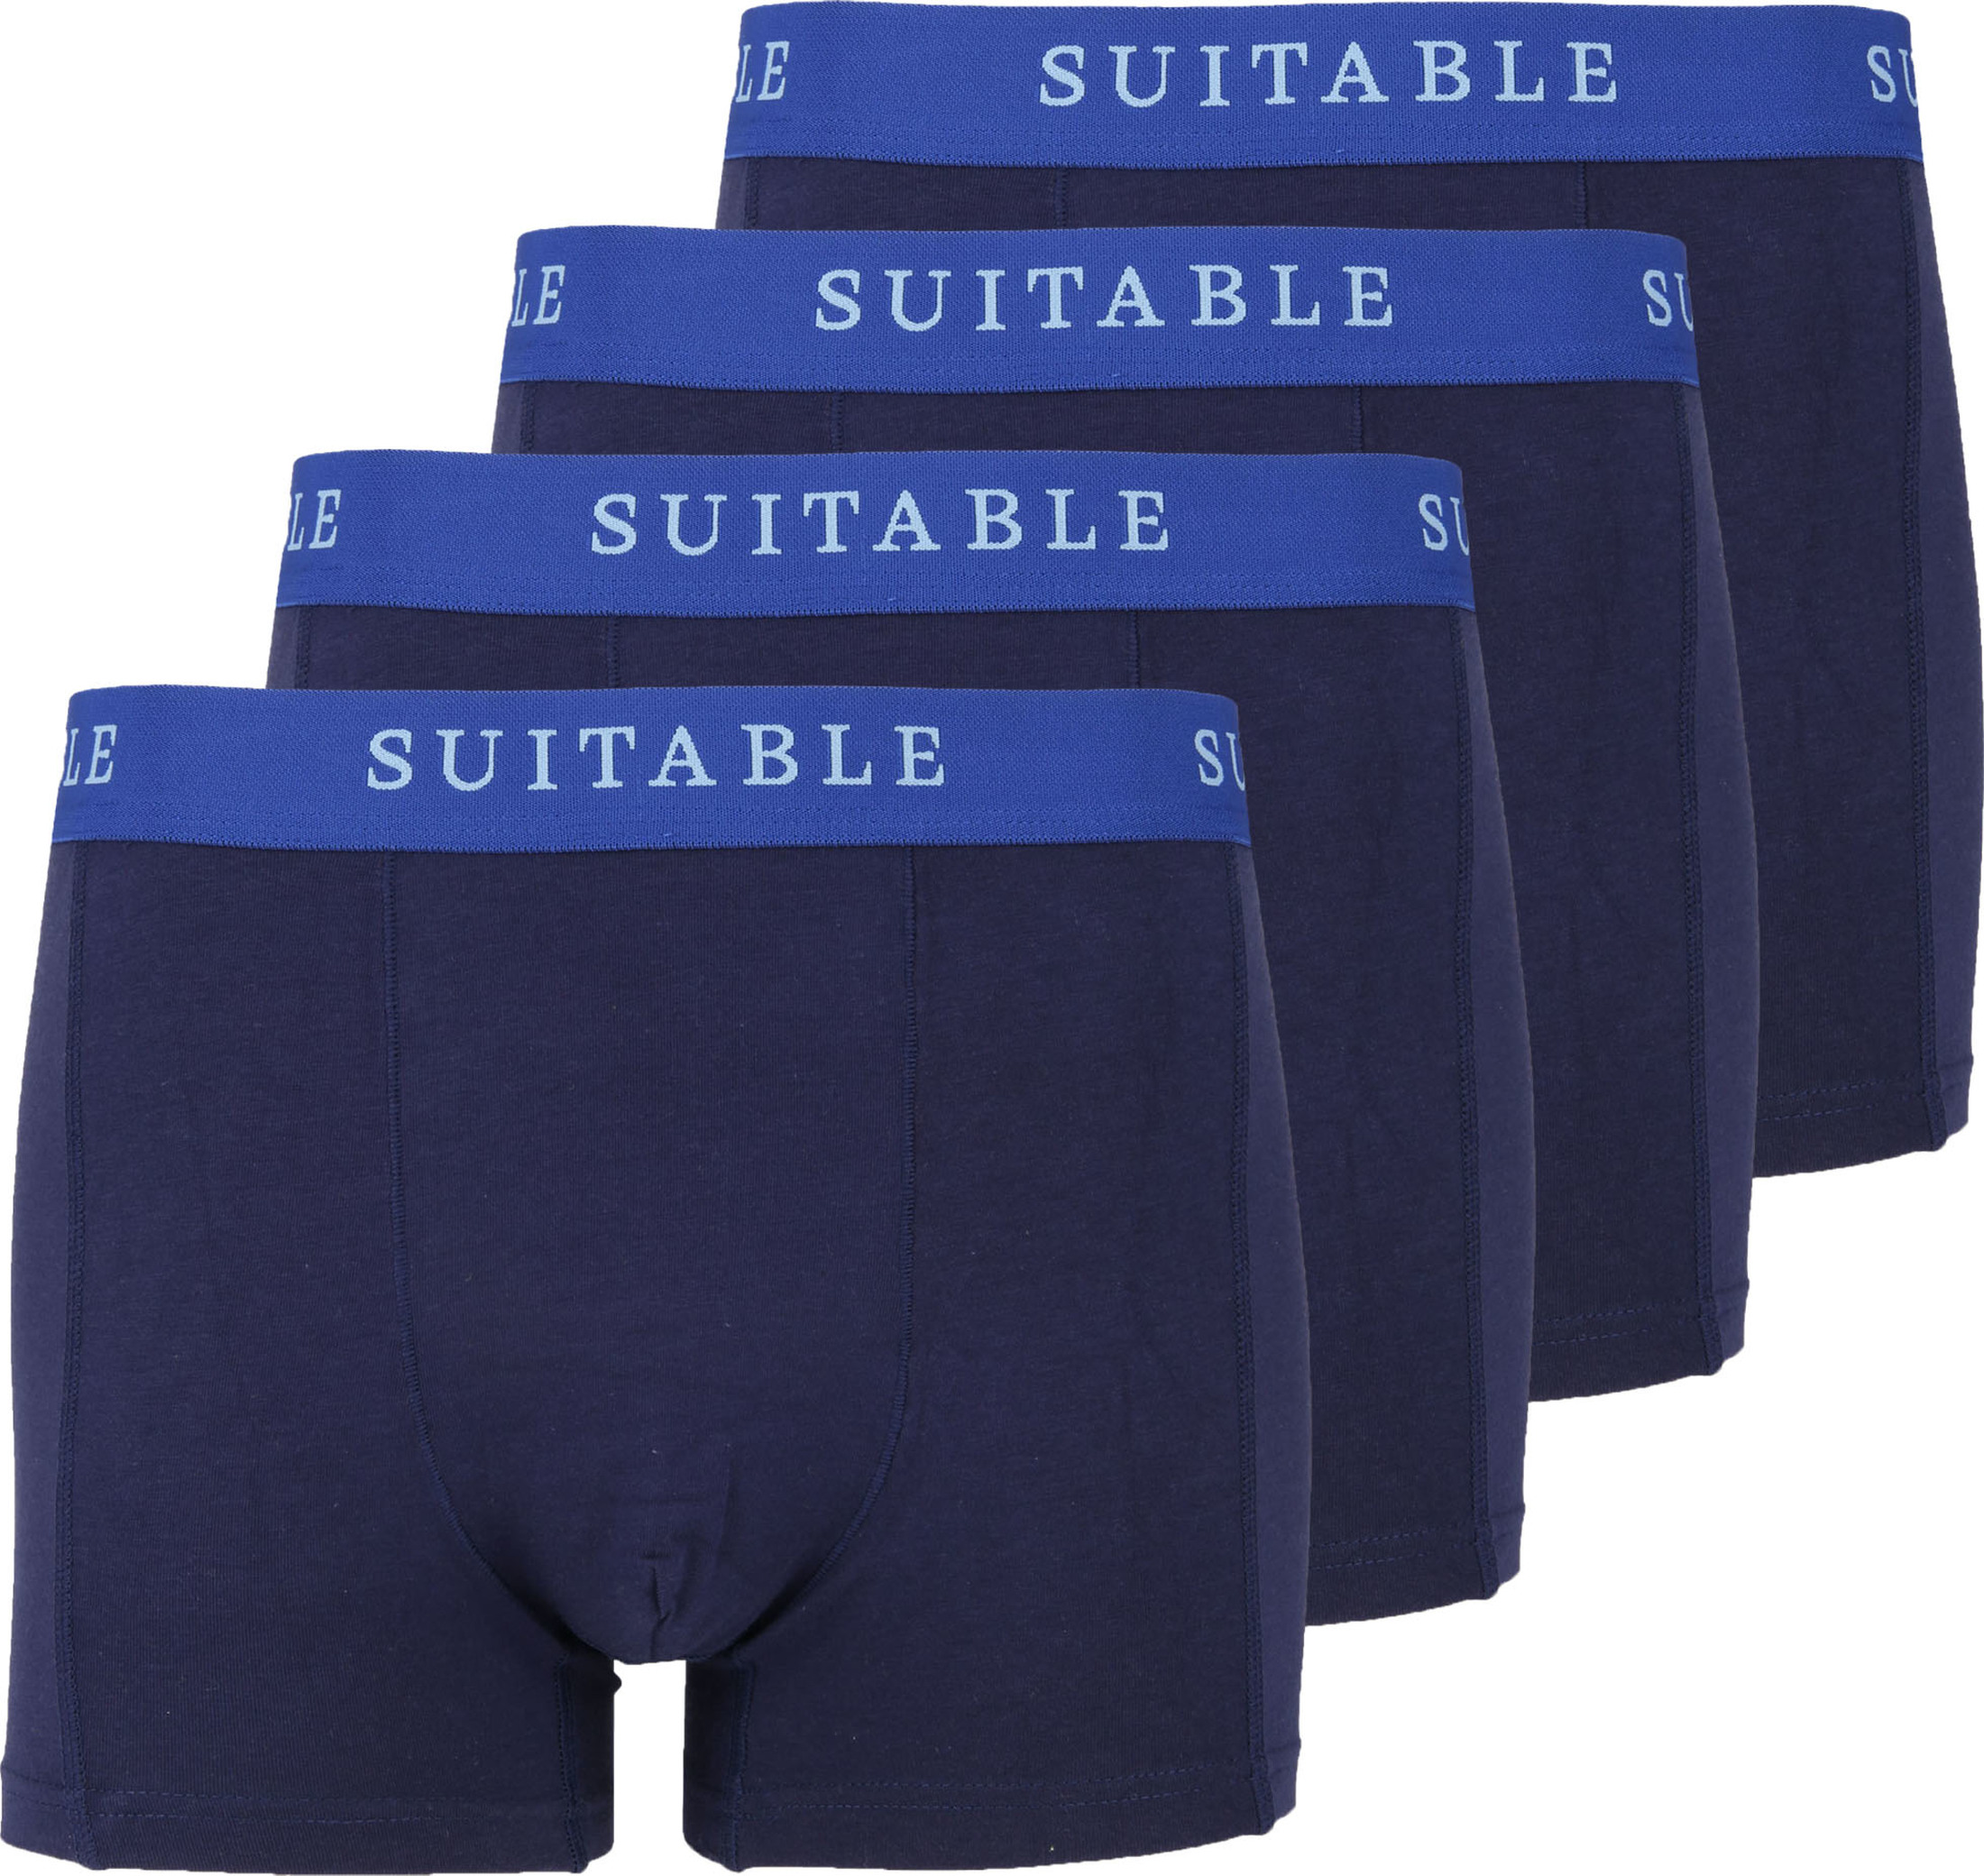 Suitable Bamboo Boxershorts 4er-Pack Dunkelblau